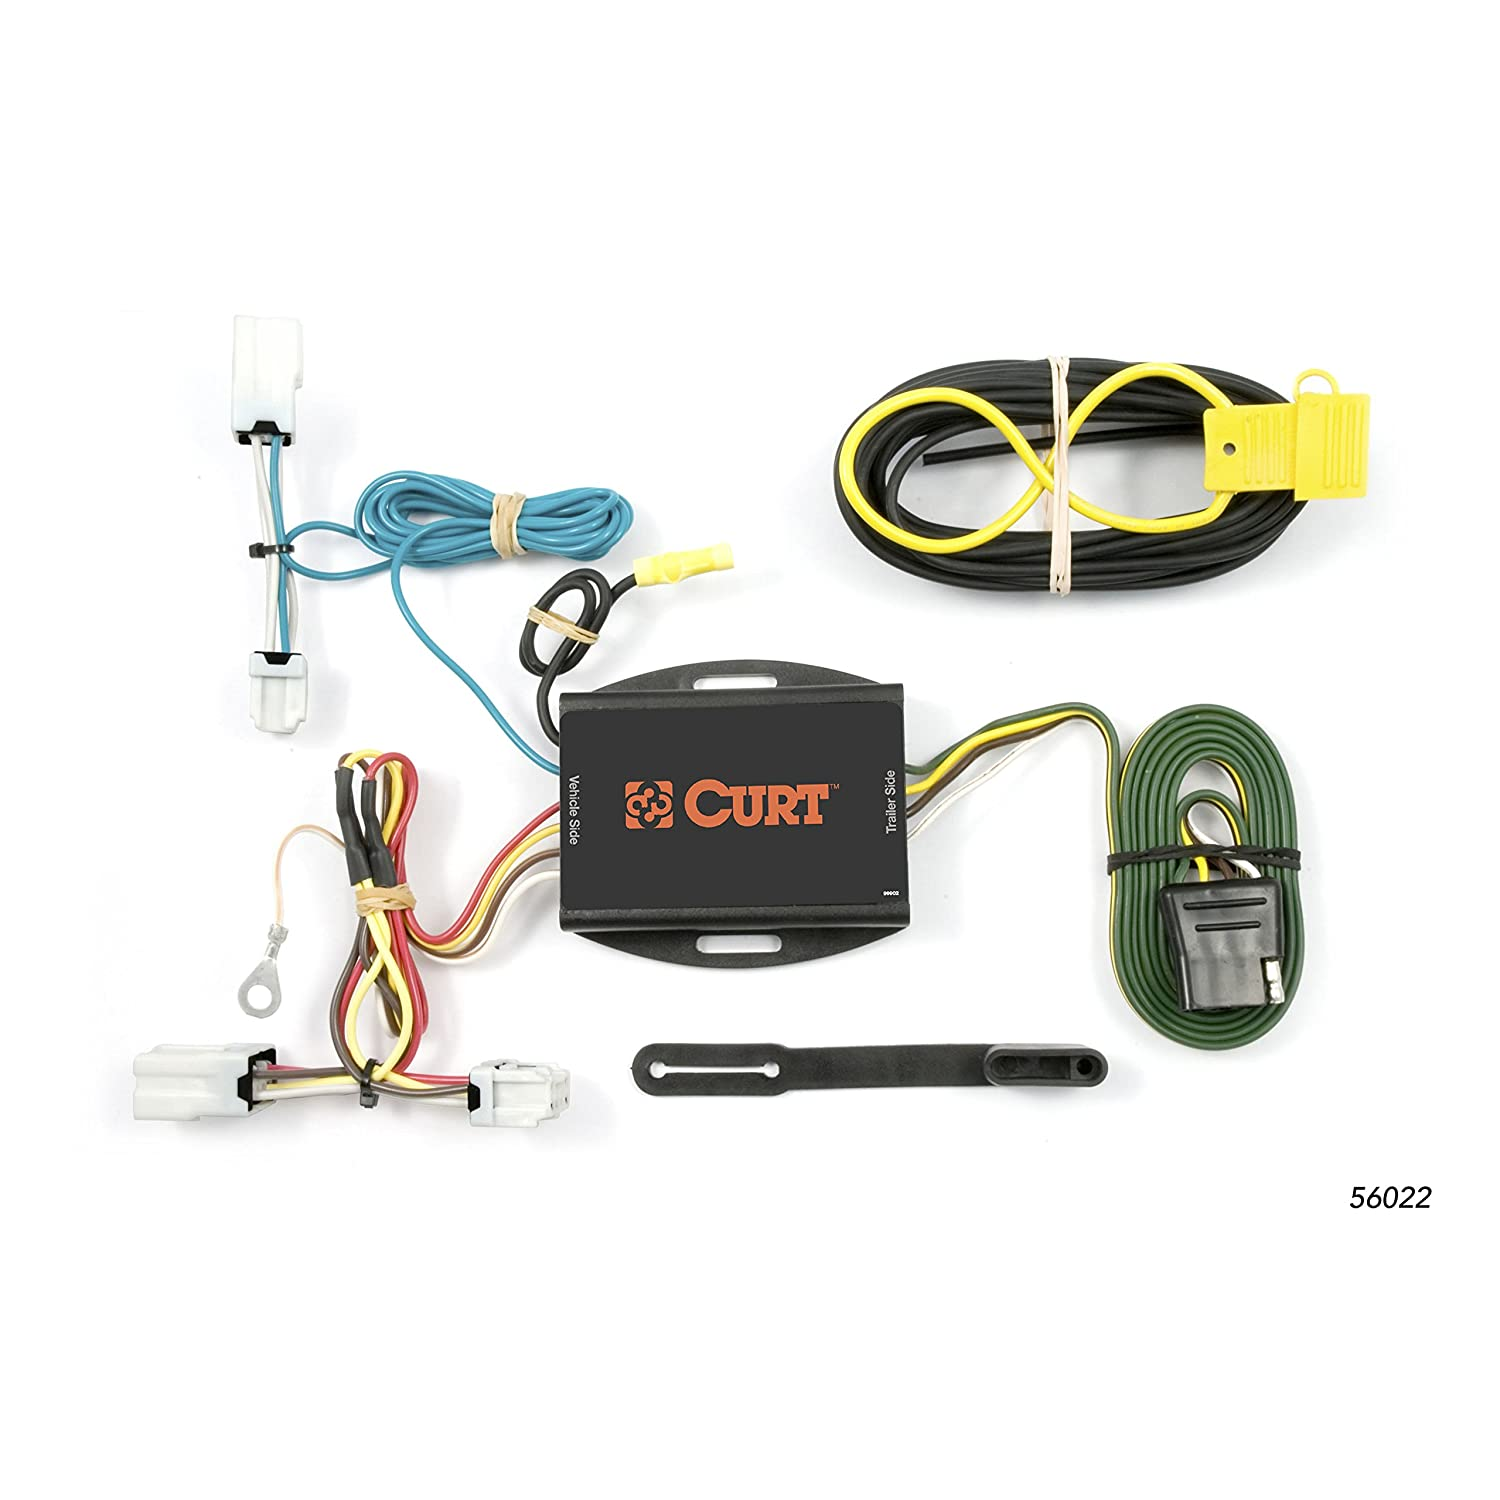 CURT 56022 Vehicle-Side Custom 4-Pin Trailer Wiring Harness for Select on